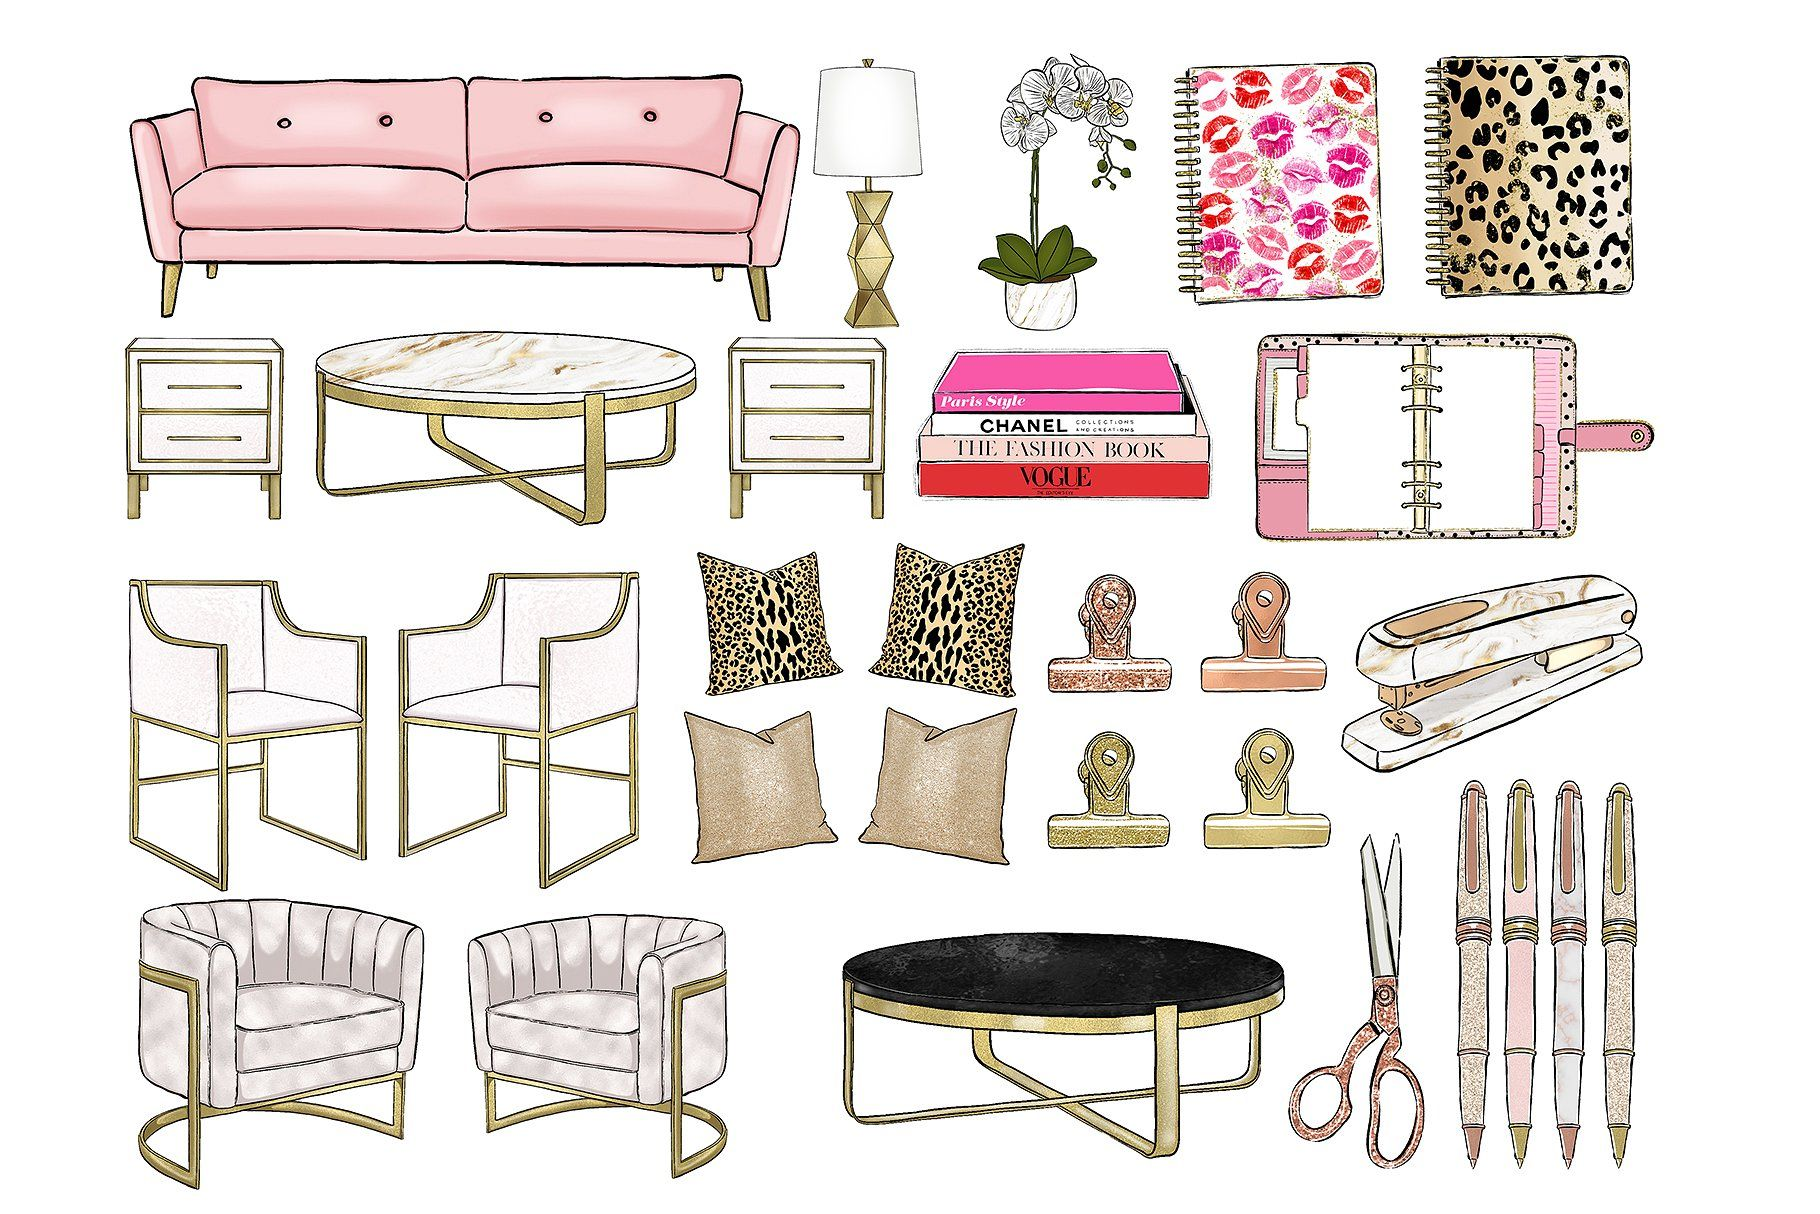 Girl Boss Cliparts #dpi#format#High#transparent.